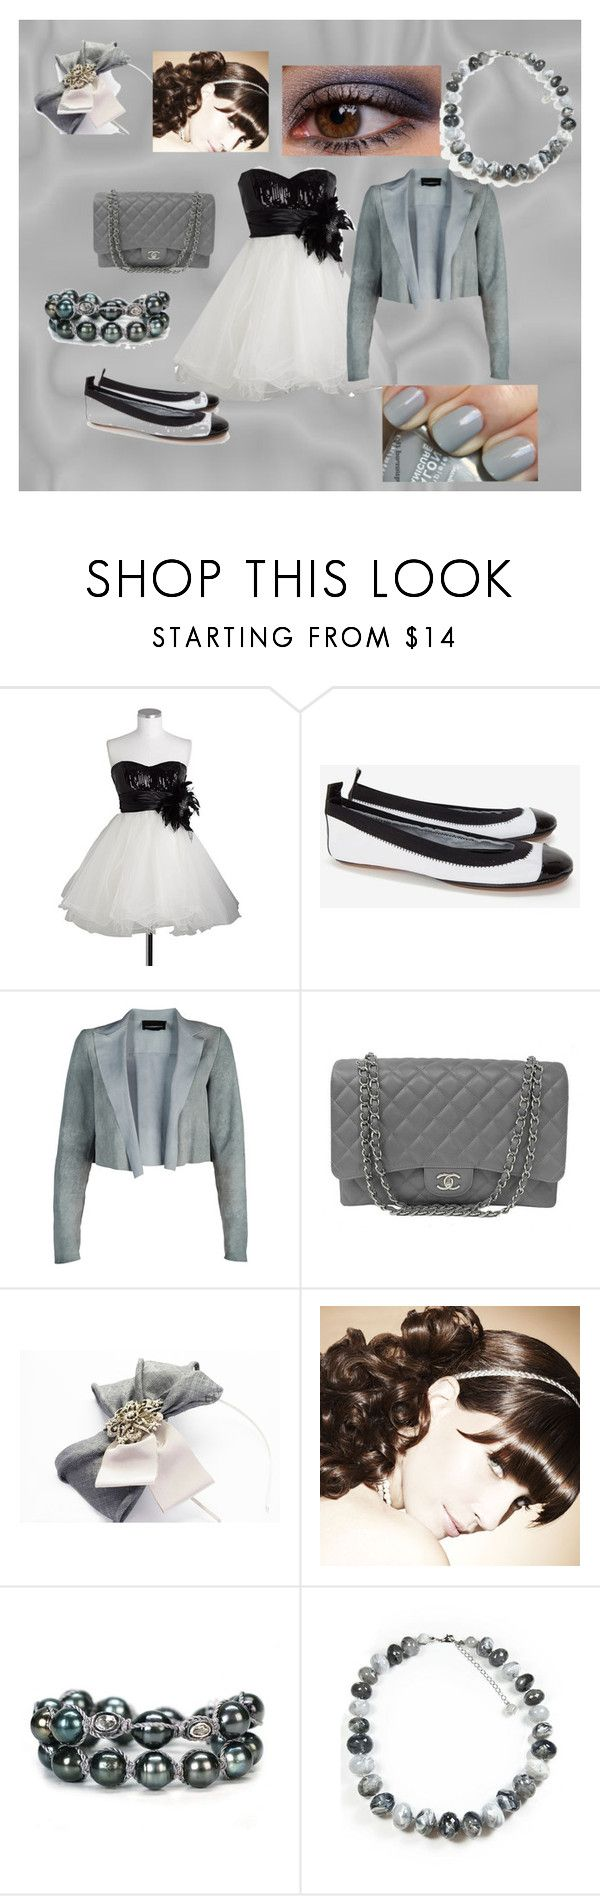 """randomness#4"" by faleur102 ❤ liked on Polyvore featuring Urban Decay, Yosi Samra, Diesel Black Gold, Chanel, Jordan Alexander and Minuet"